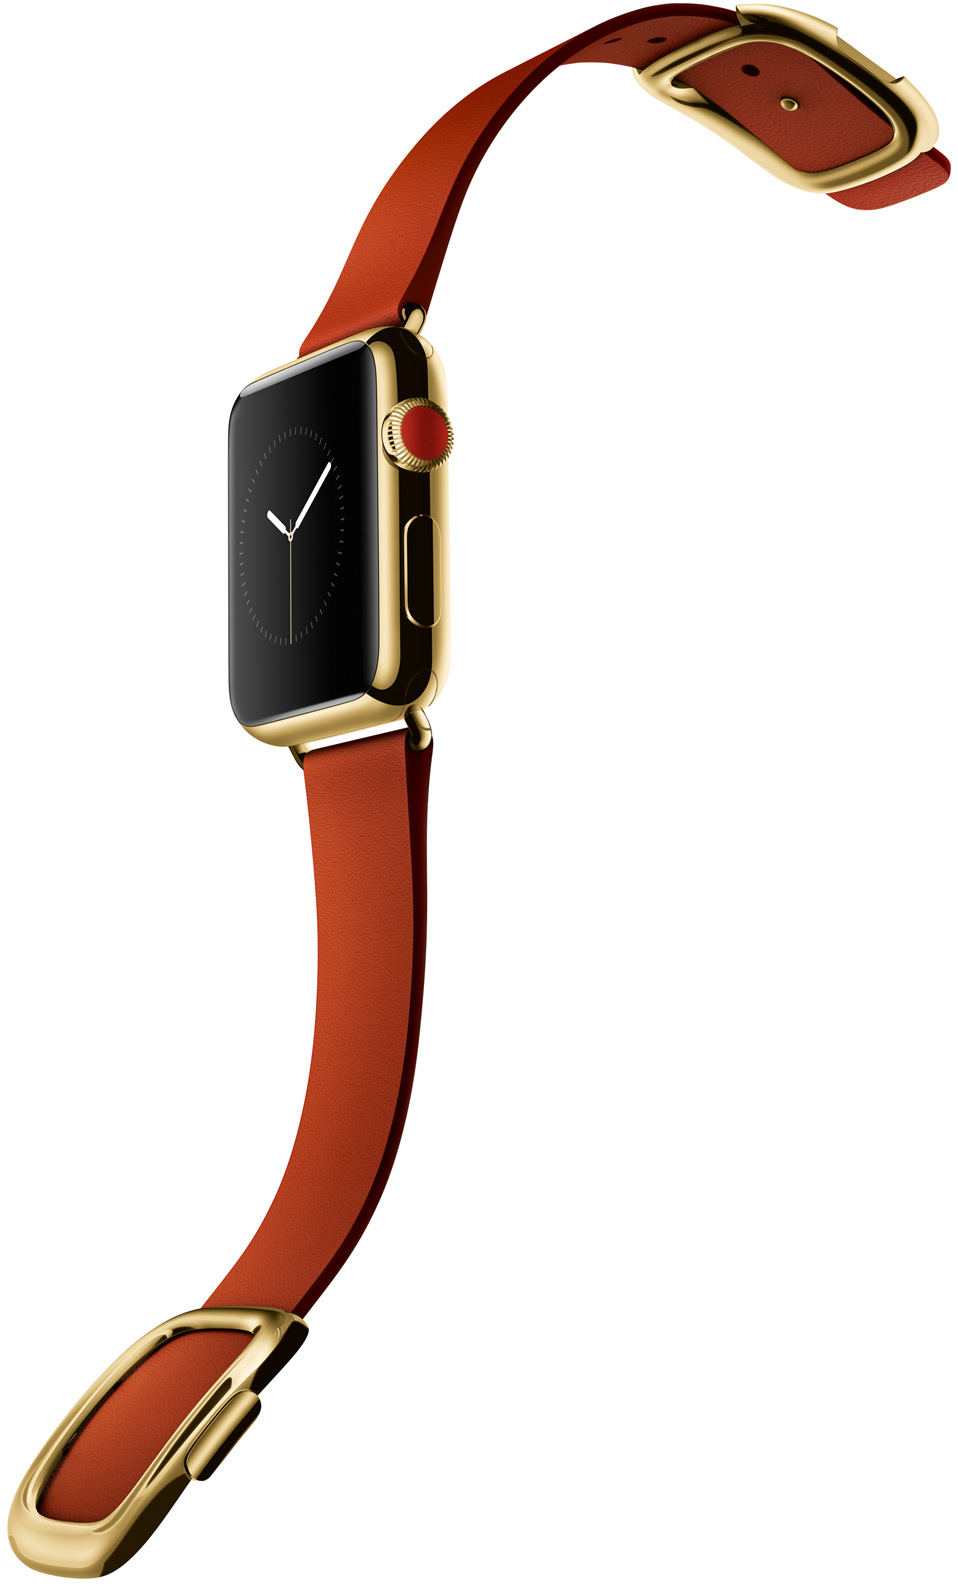 Apple Watch Edition resimleri